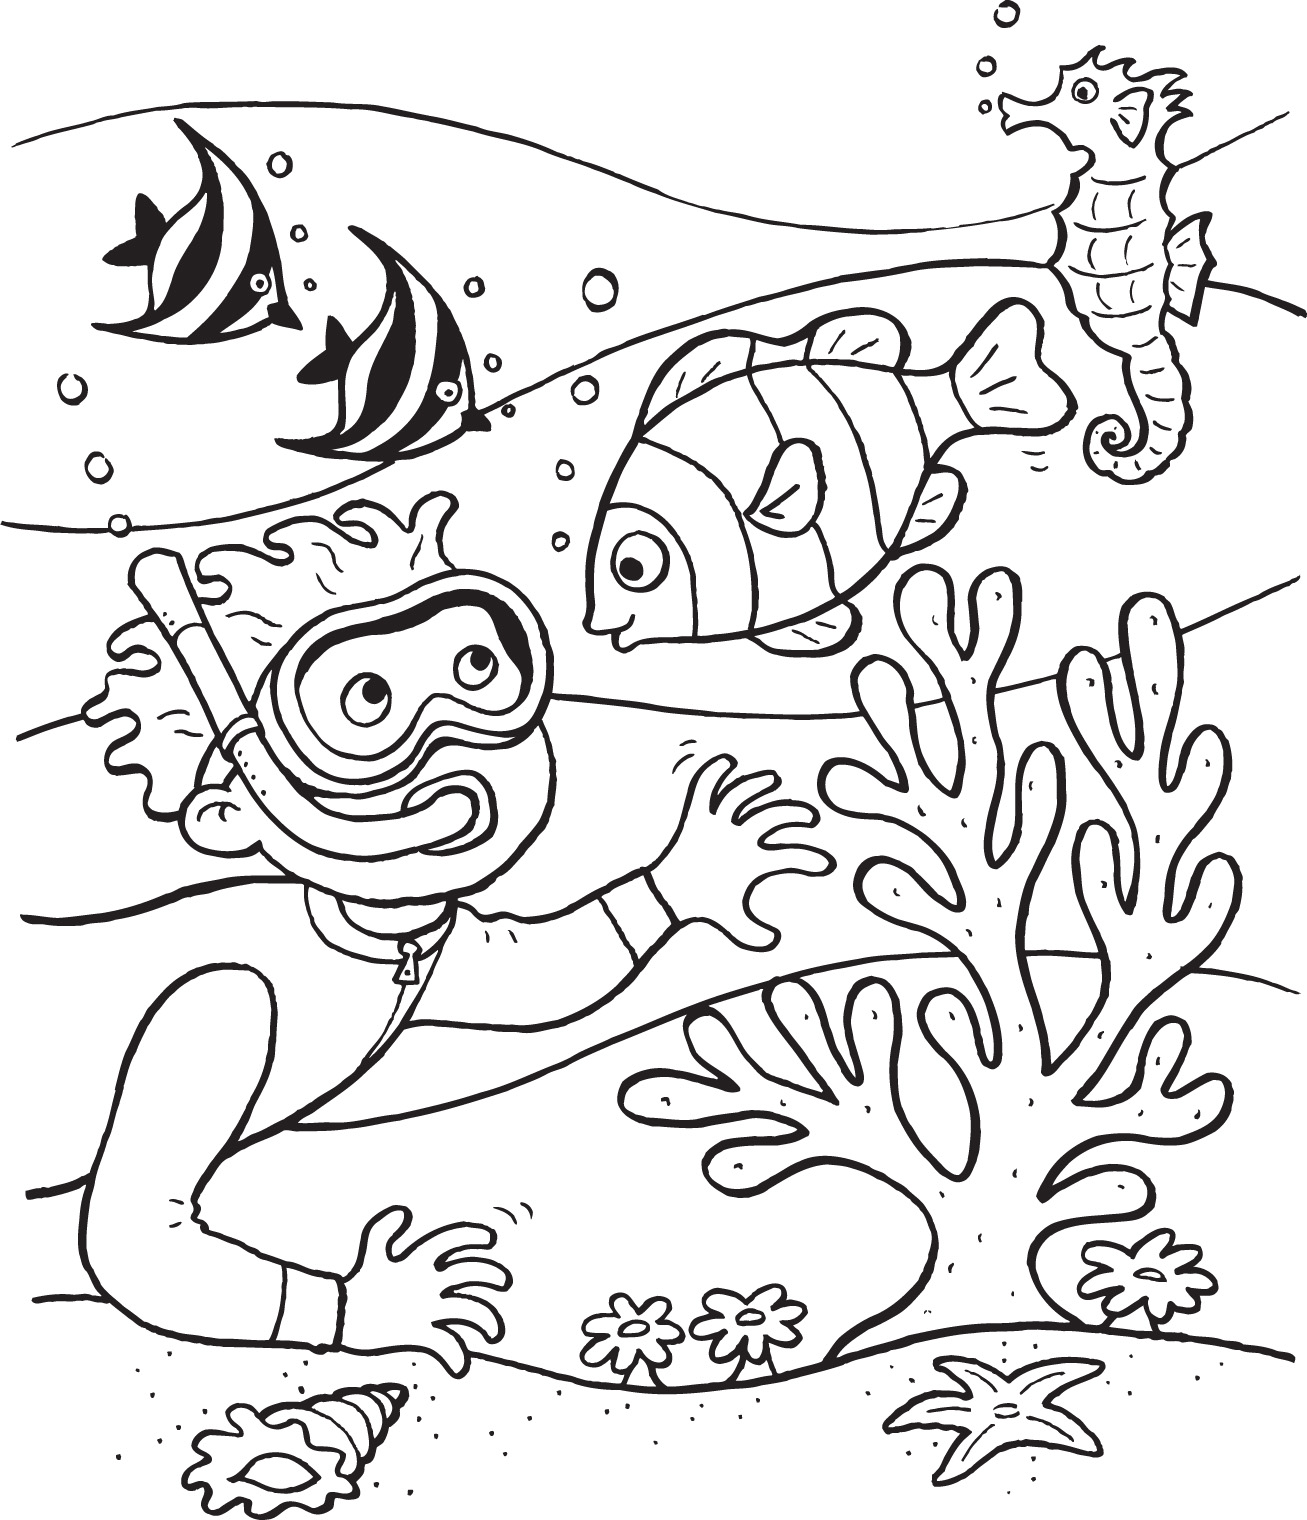 Ocean Scene Drawing at GetDrawings.com | Free for personal use Ocean ...